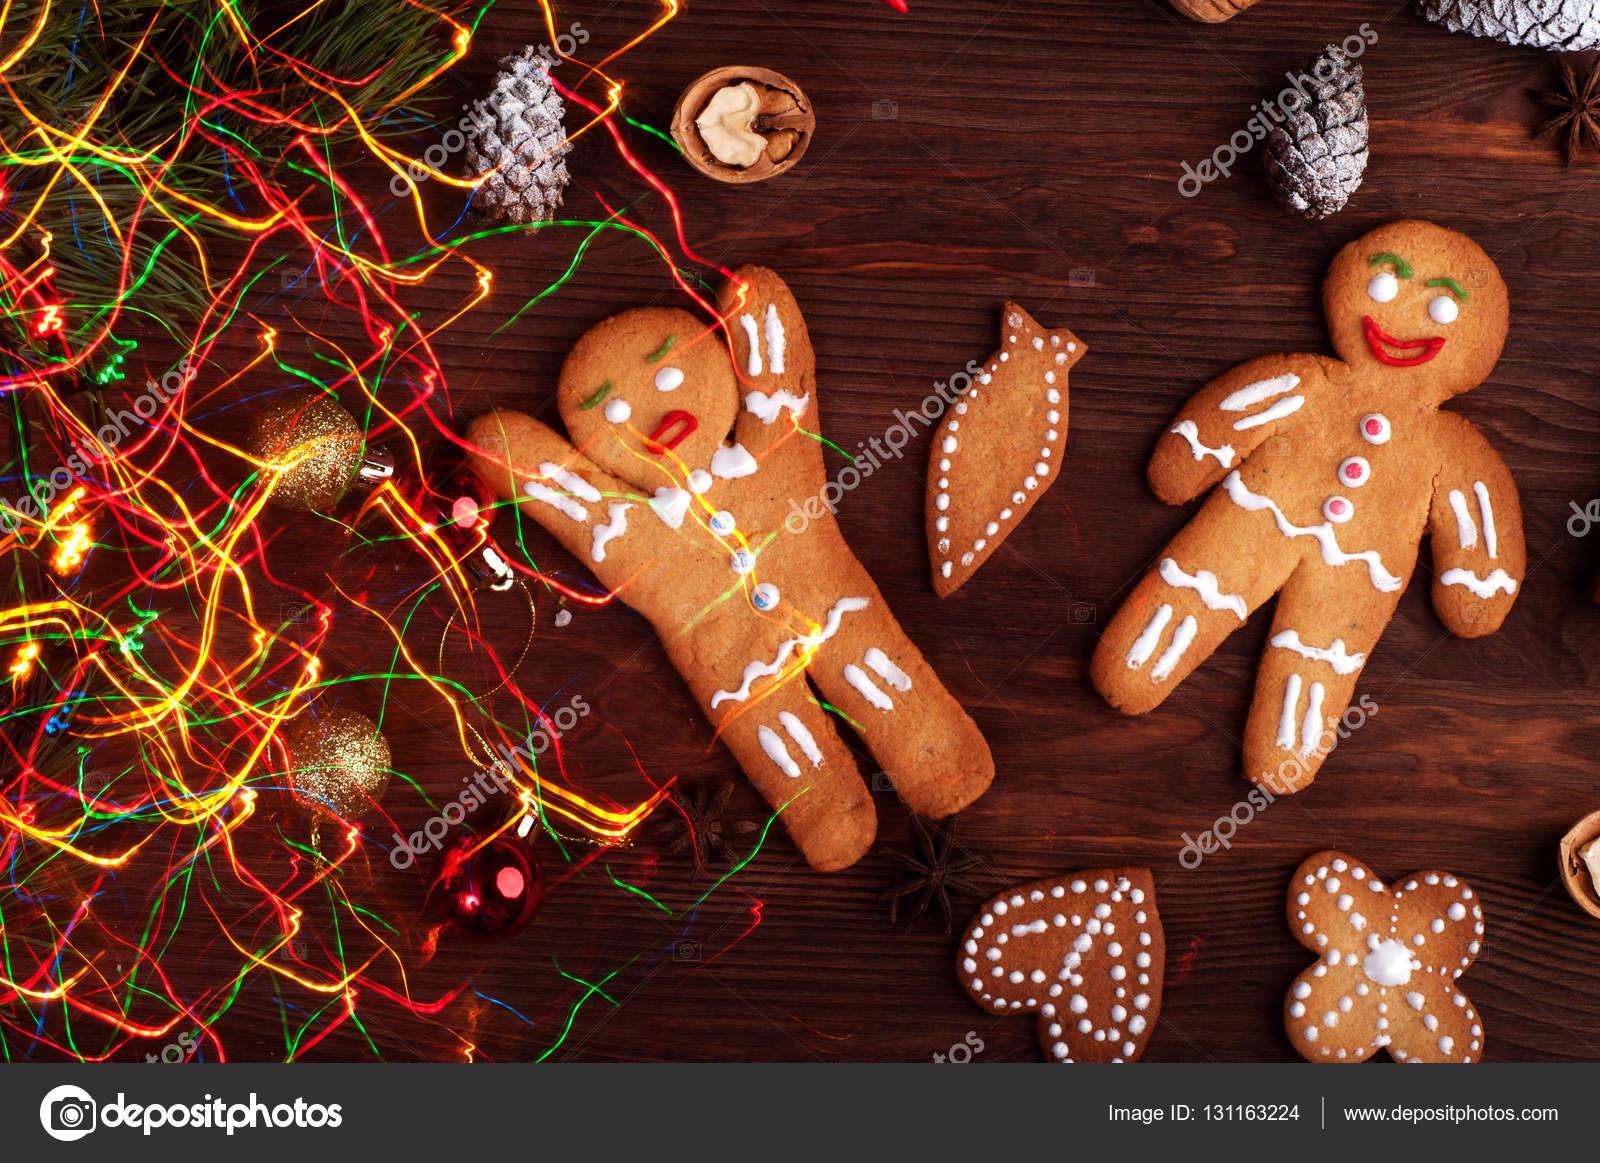 Christmas And New Year Wallpaper Background Gingerbread Man Toys Decorations Nuts Cinnamon Anise Other Attributes Of The Nativity